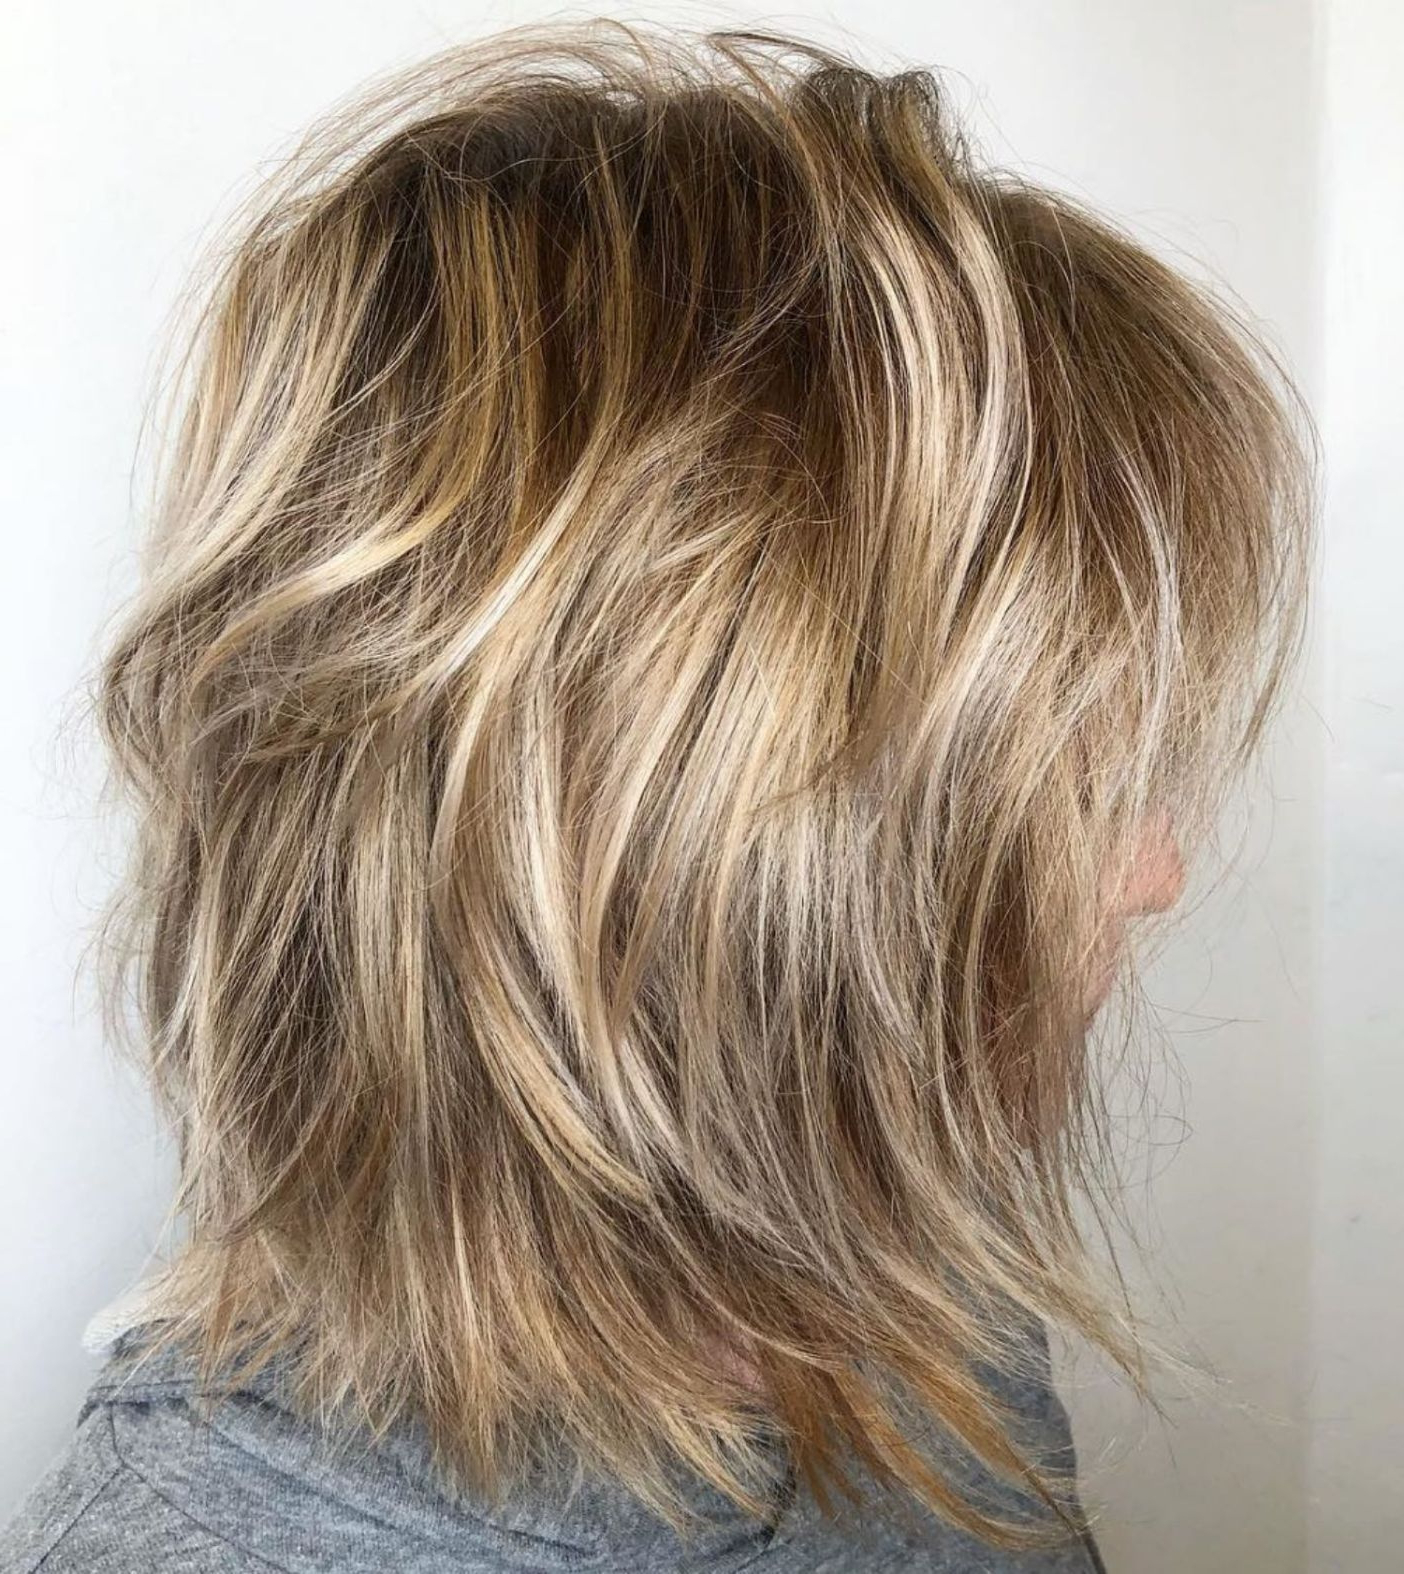 Famous Beach Blonde Medium Shag Haircuts Within Hairstyles : Shaggy Blonde Bob With Highlights Superb 70 (Gallery 4 of 20)